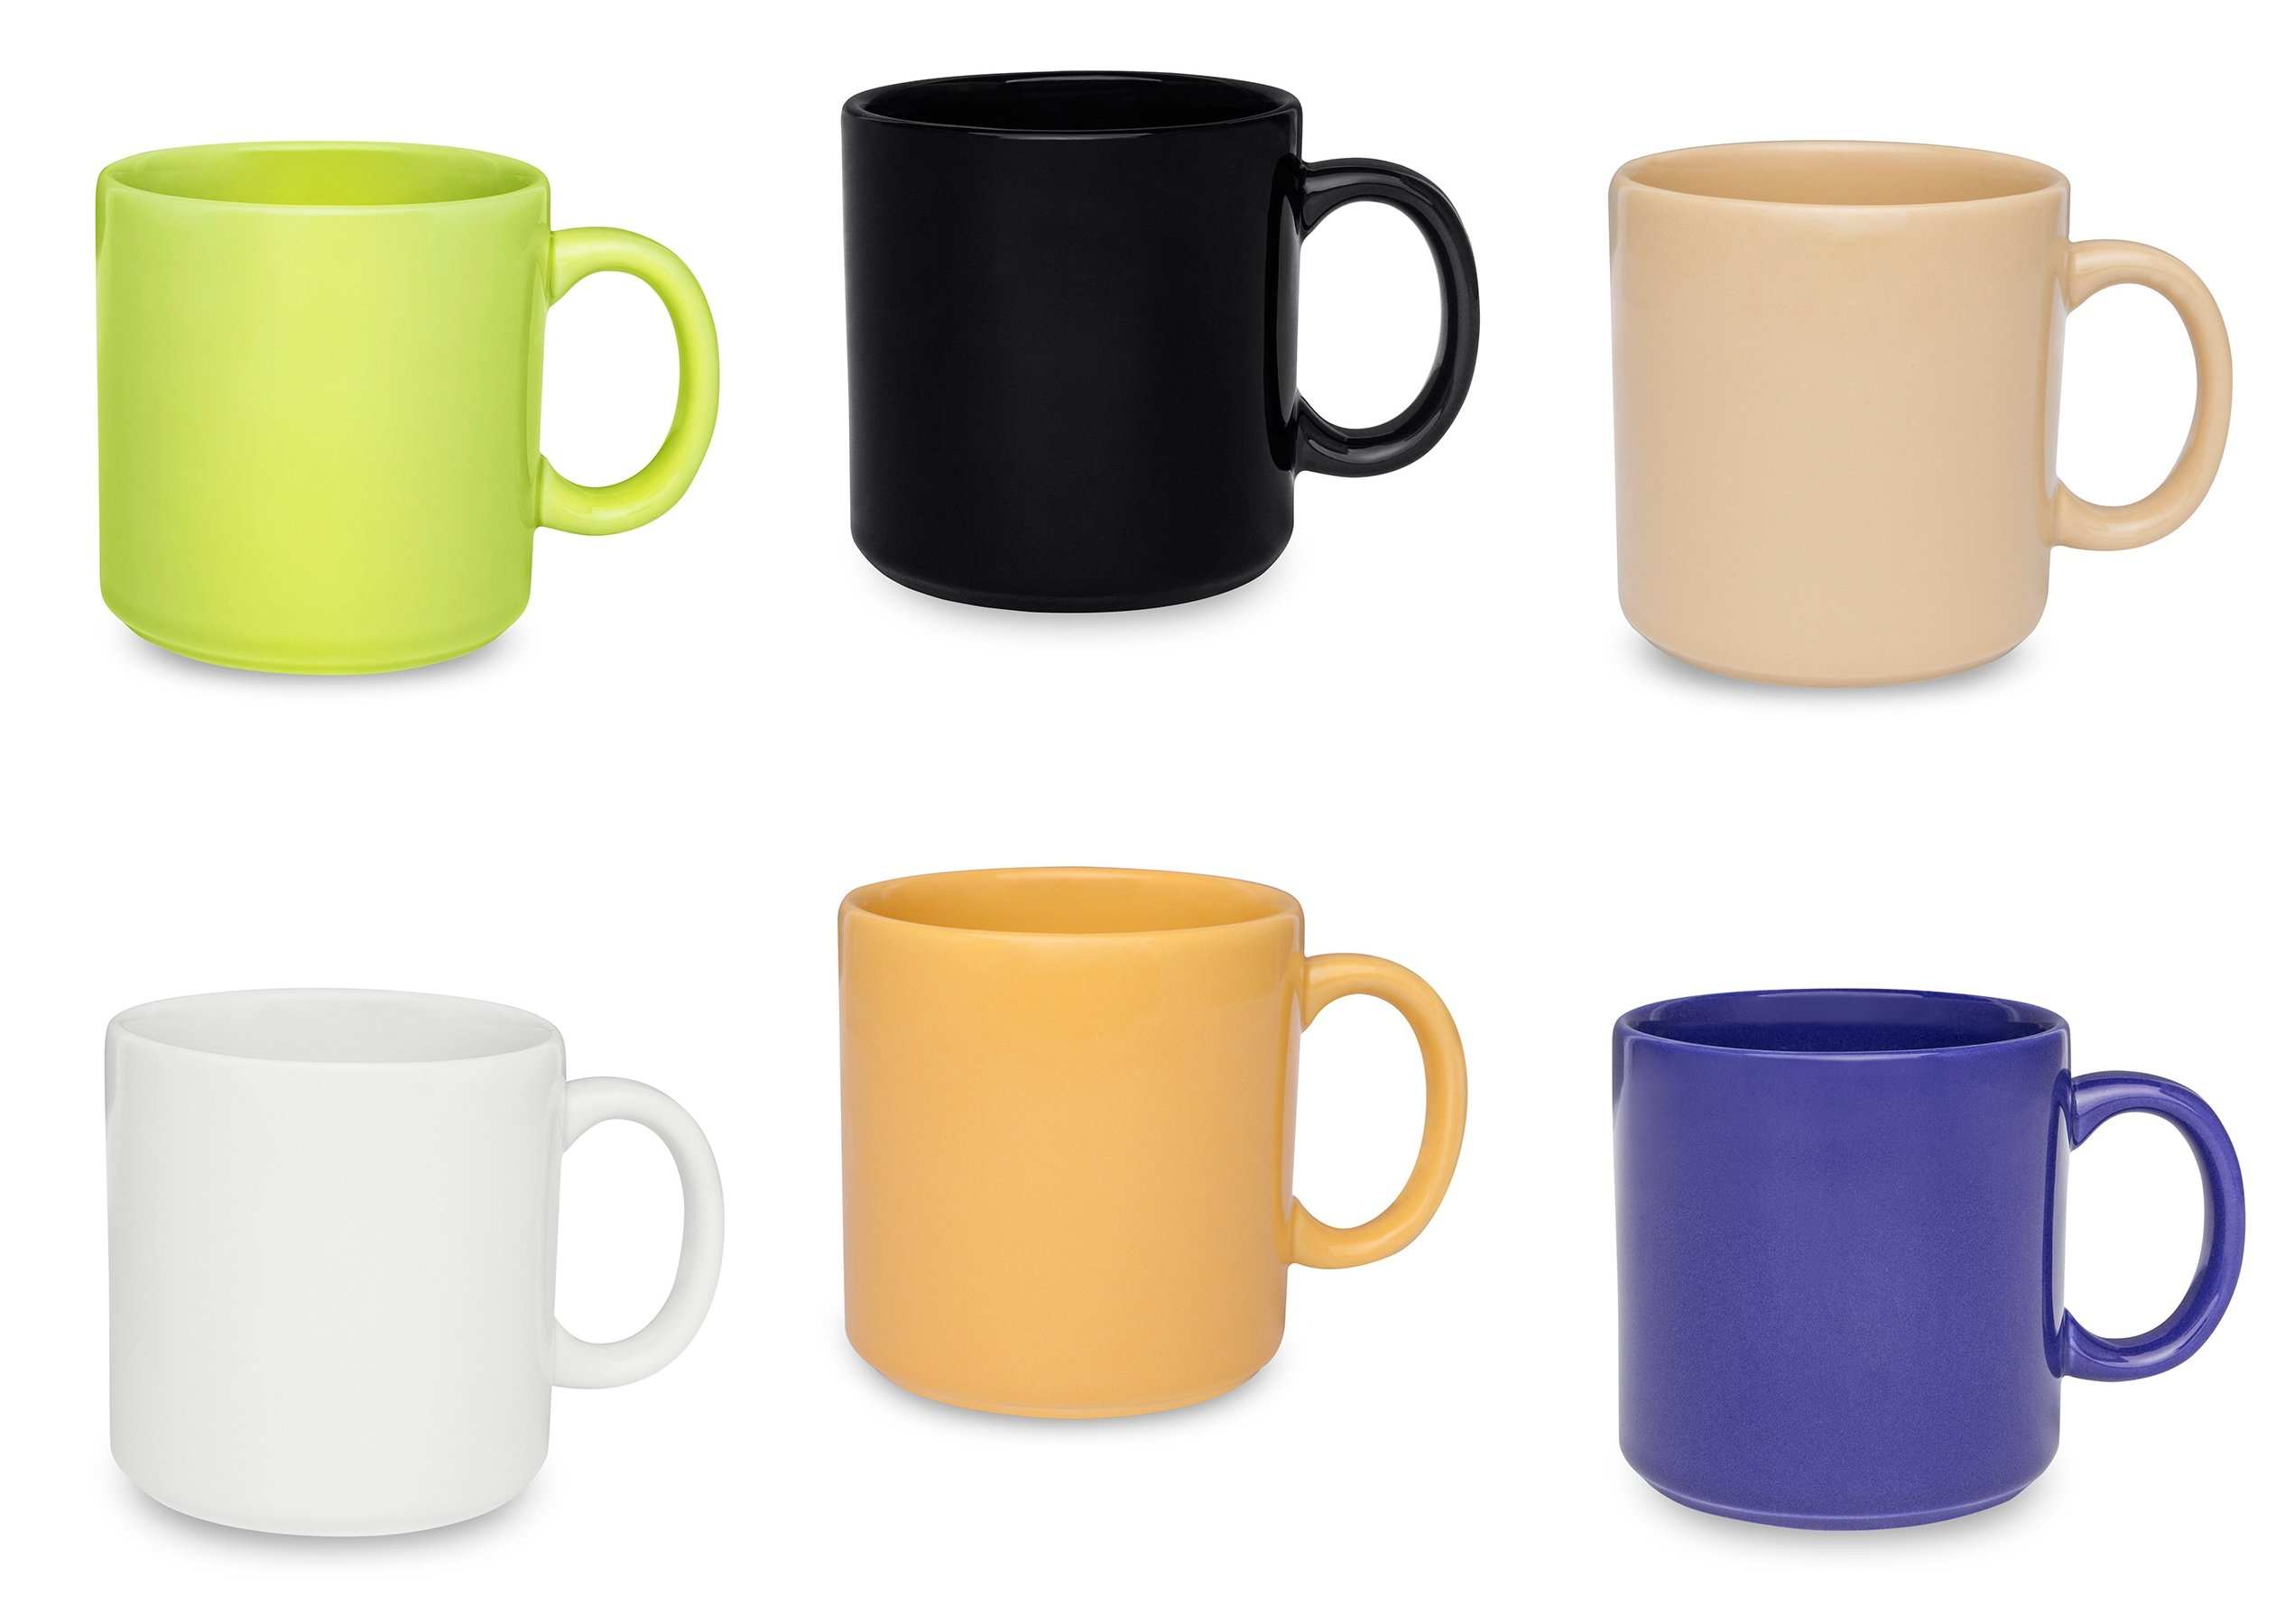 Oxford Biona Mugs For Coffee, Tea or Chocolate (Set of 6)- 12 oz- Multicolor